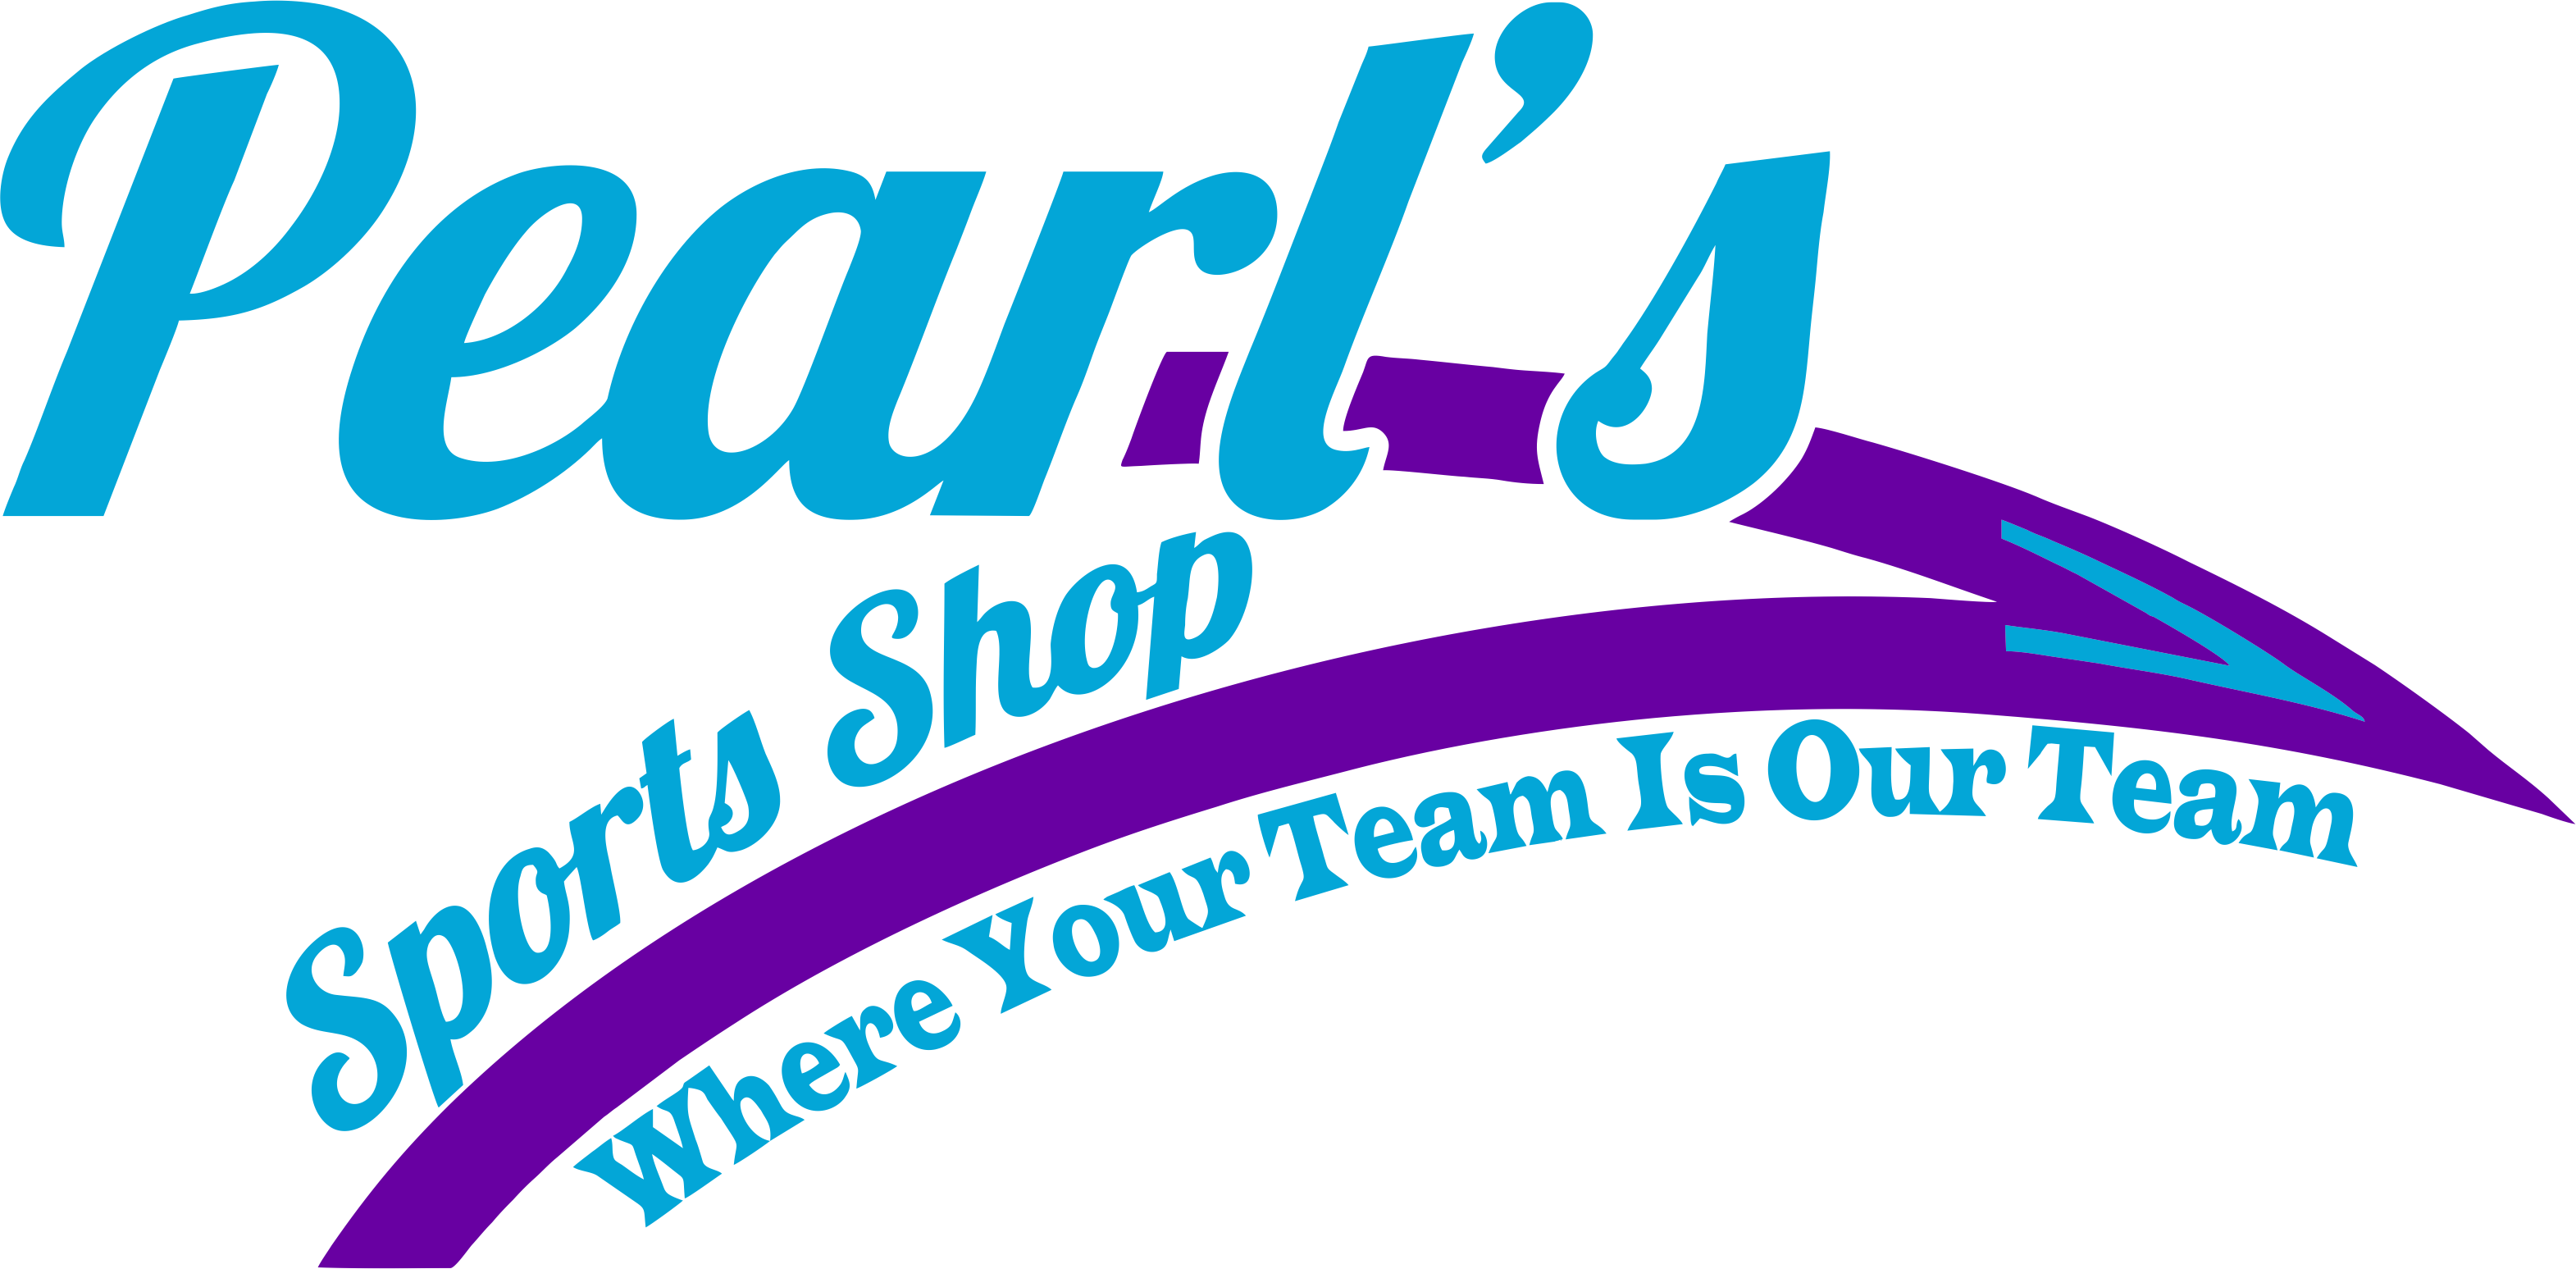 Pearl's Sports Shop